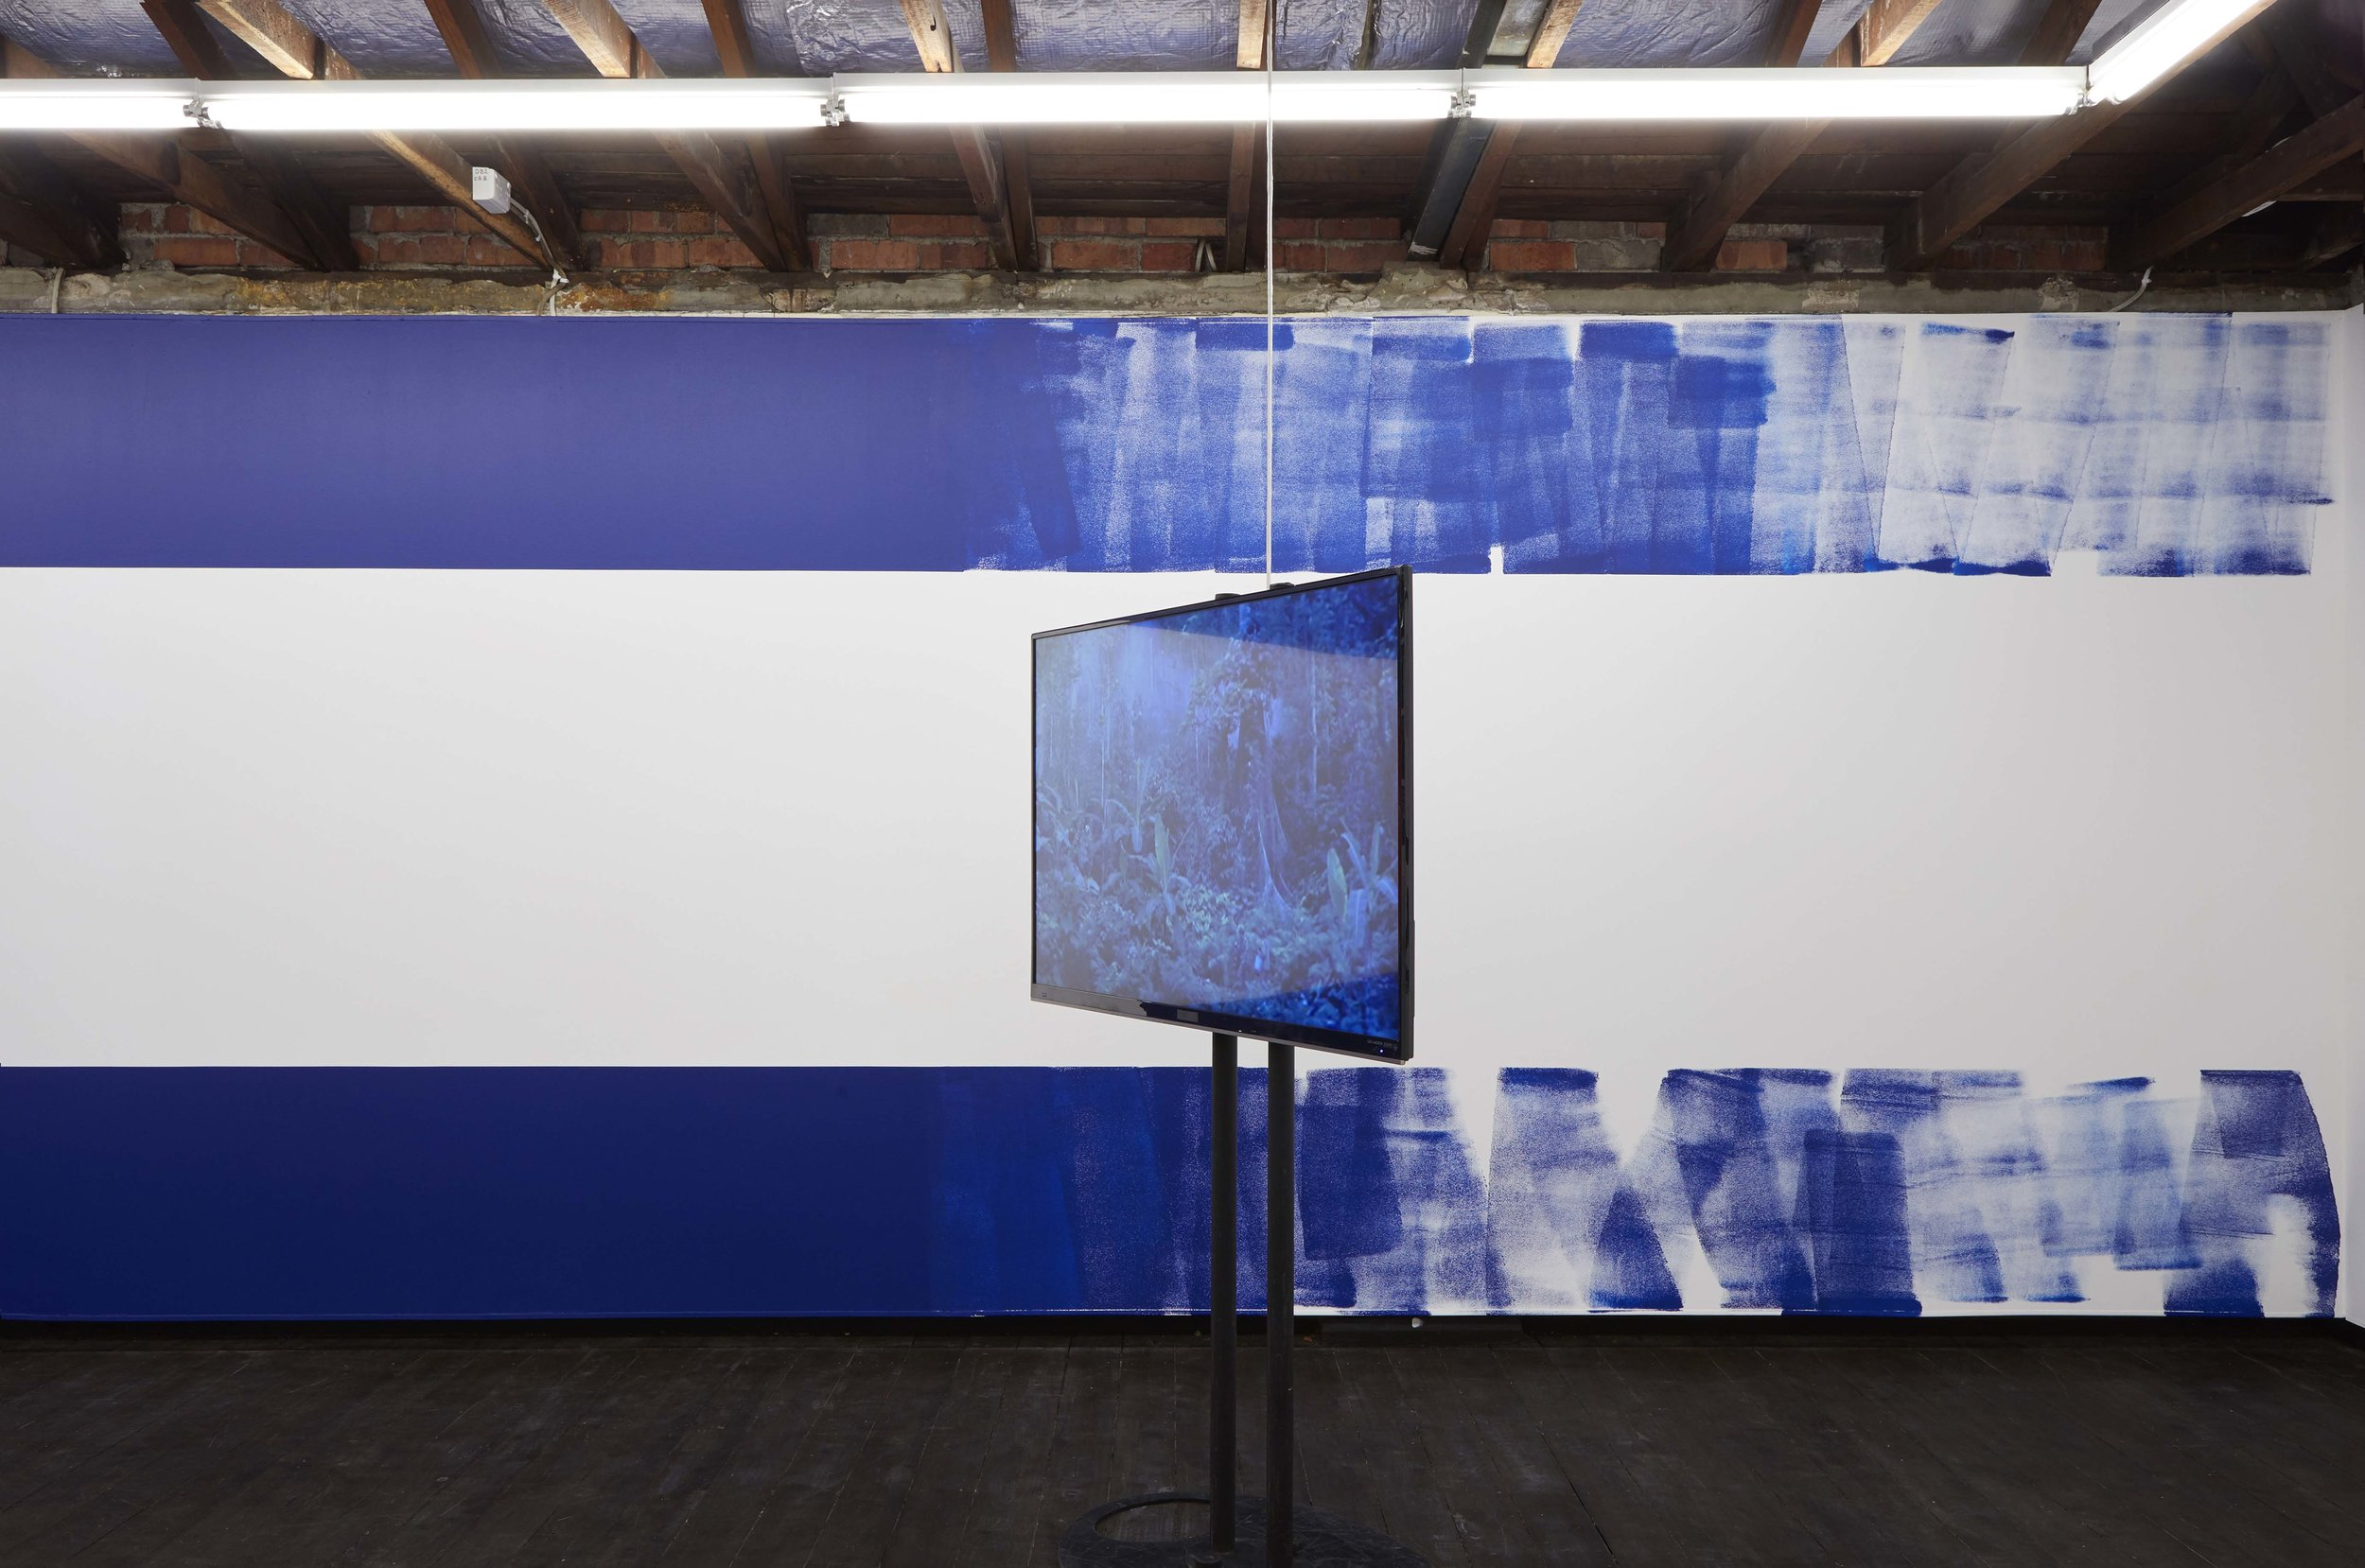 Coconut Republic , 2017, single-channel video with sound, 8 minutes 32 seconds,installation view,  Coconut Republic , Firstdraft, Sydney. Editor: Kate Blackmore. Photo: Zan Wimberley. Copyright JD Reforma